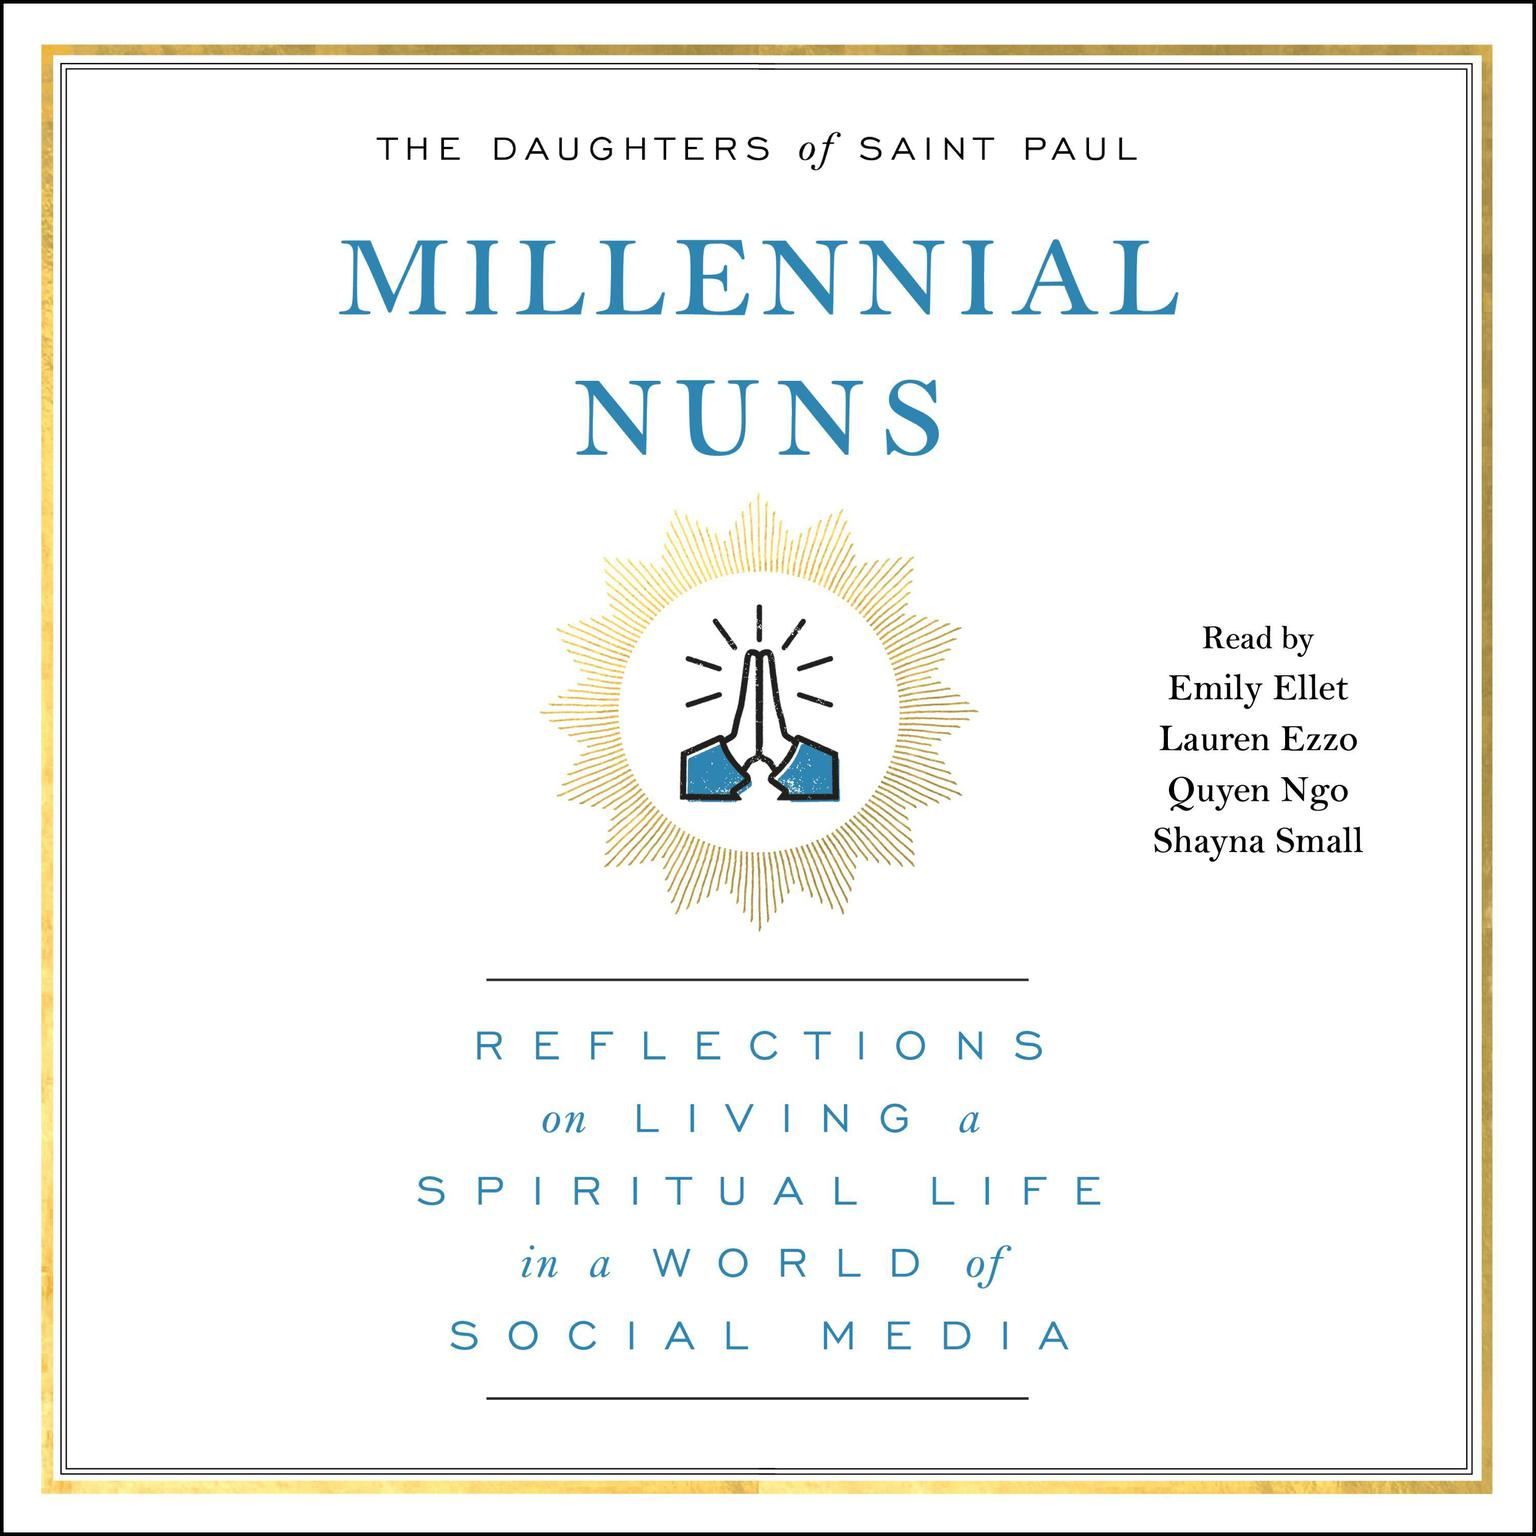 Millennial Nuns: Reflections on Living a Spiritual Life in a World of Social Media Audiobook, by The Daughters of Saint Paul